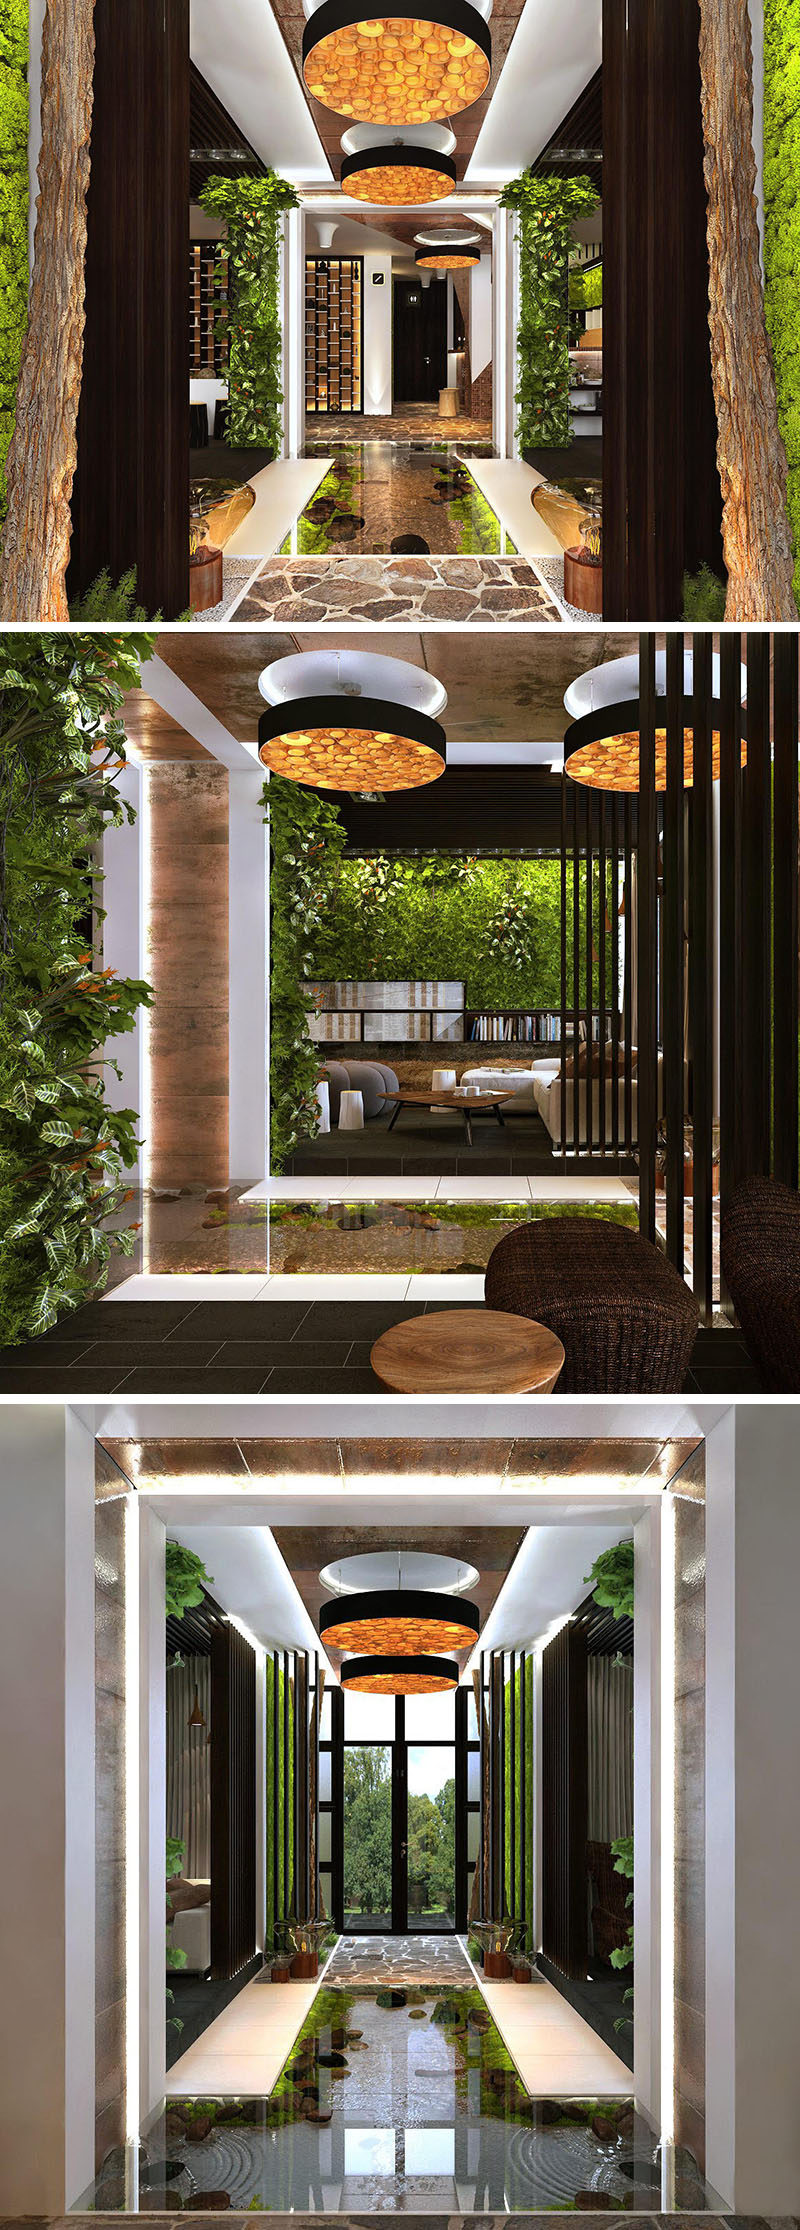 Let The Light Greet You: LZF Lobby Lighting - The importance of lighting in public spaces #Lighting #Lobby #InteriorDesign